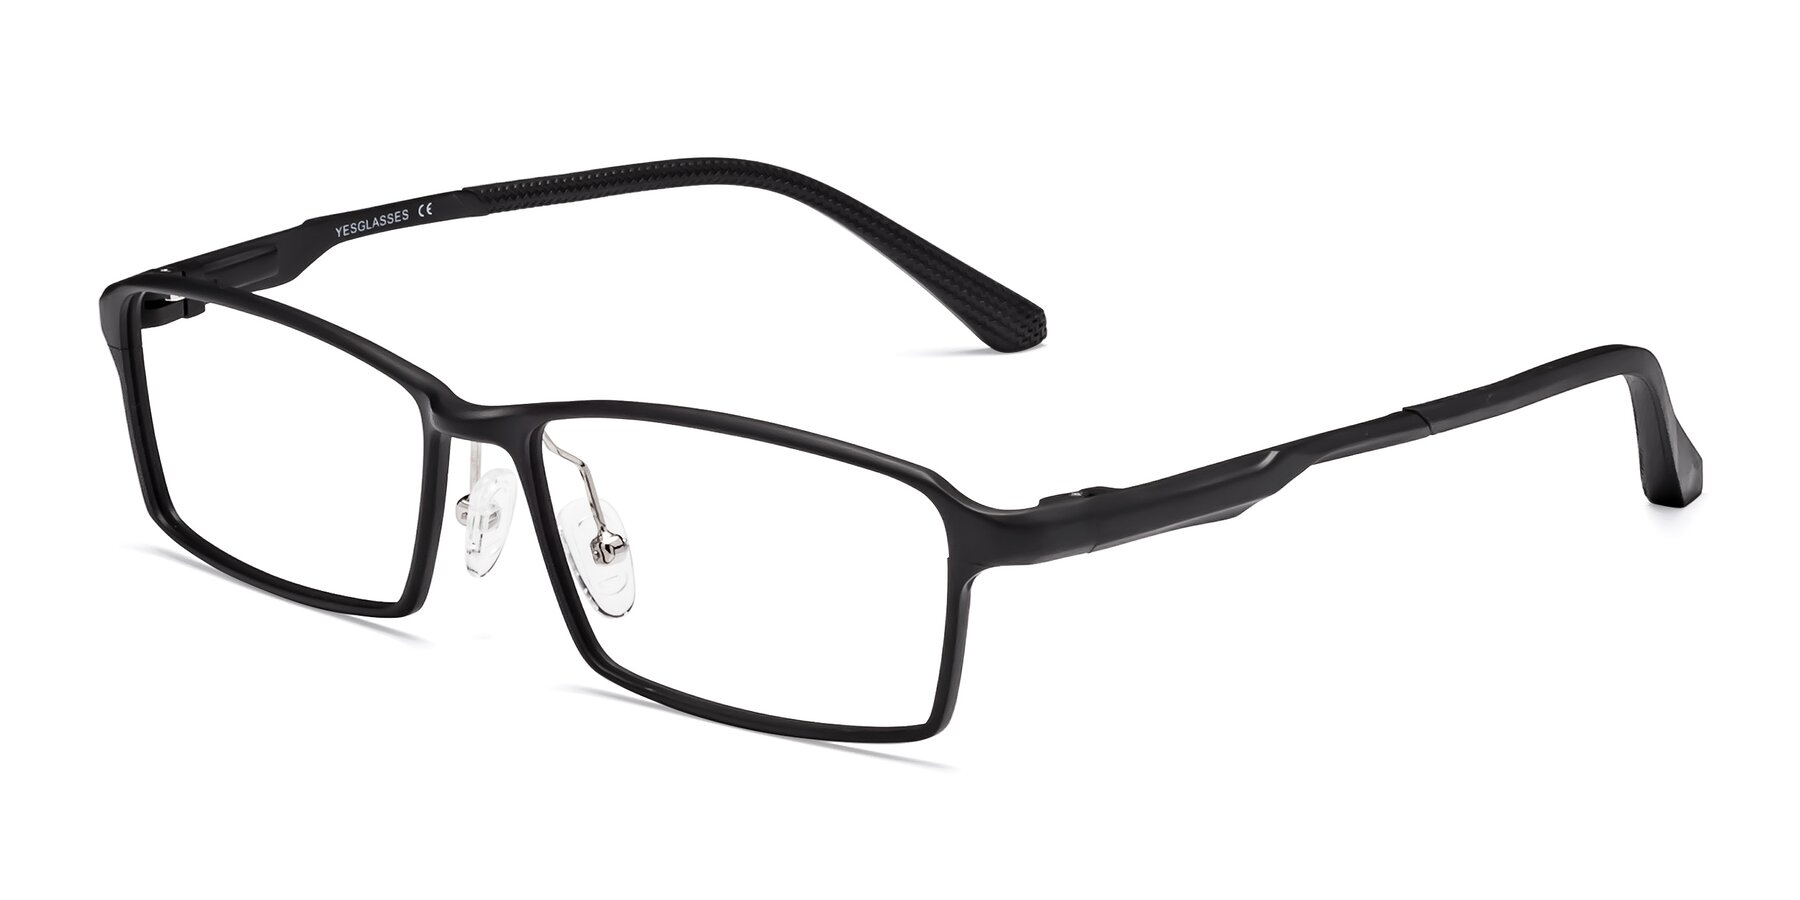 Angle of CX6287 in Black with Clear Blue Light Blocking Lenses